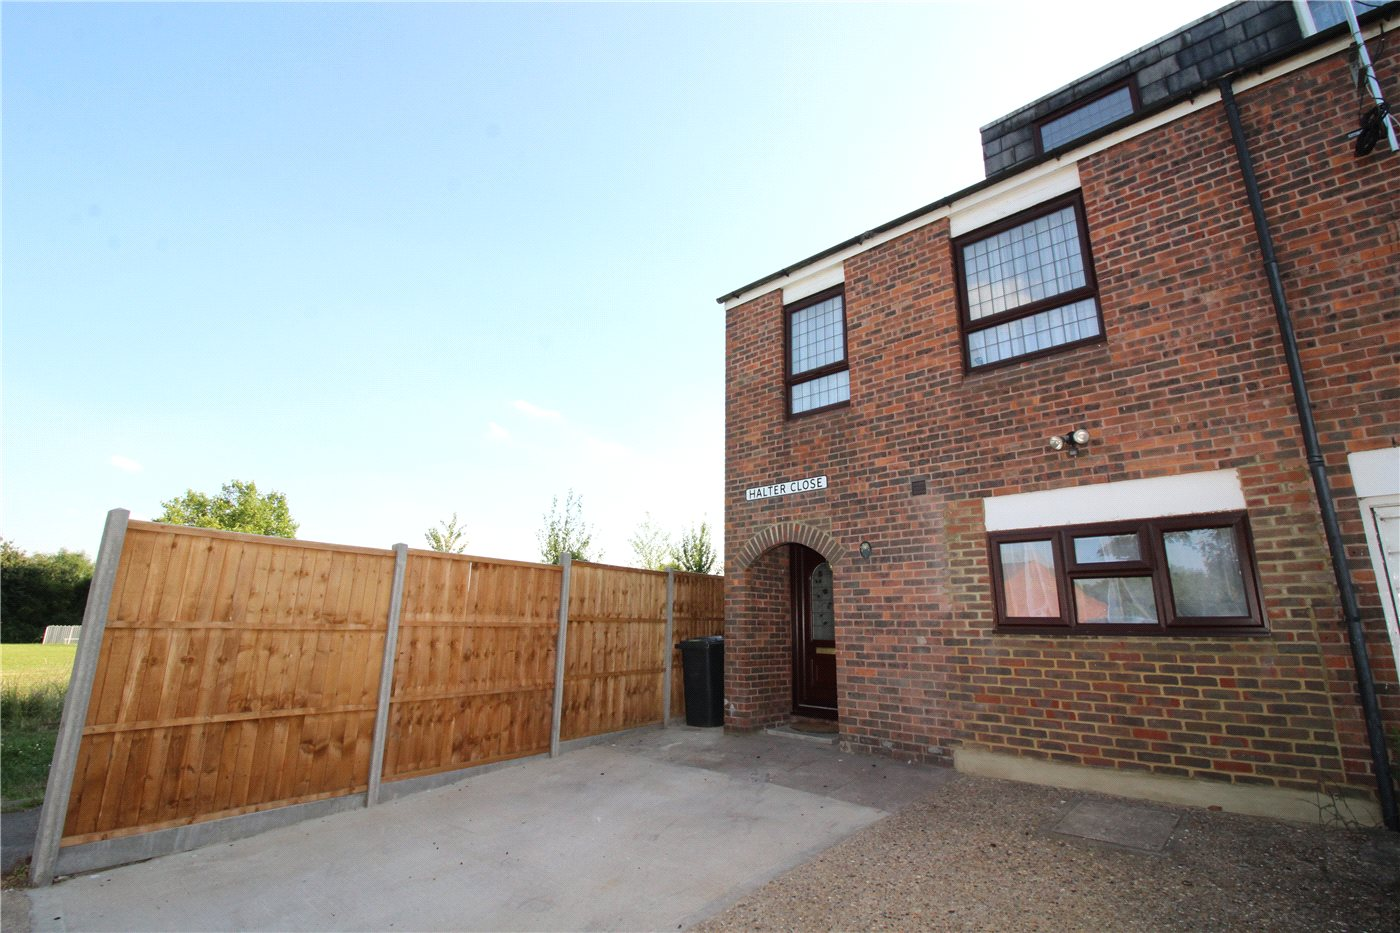 4 Bedrooms End Of Terrace House for sale in Halter Close, Borehamwood, Hertfordshire, WD6